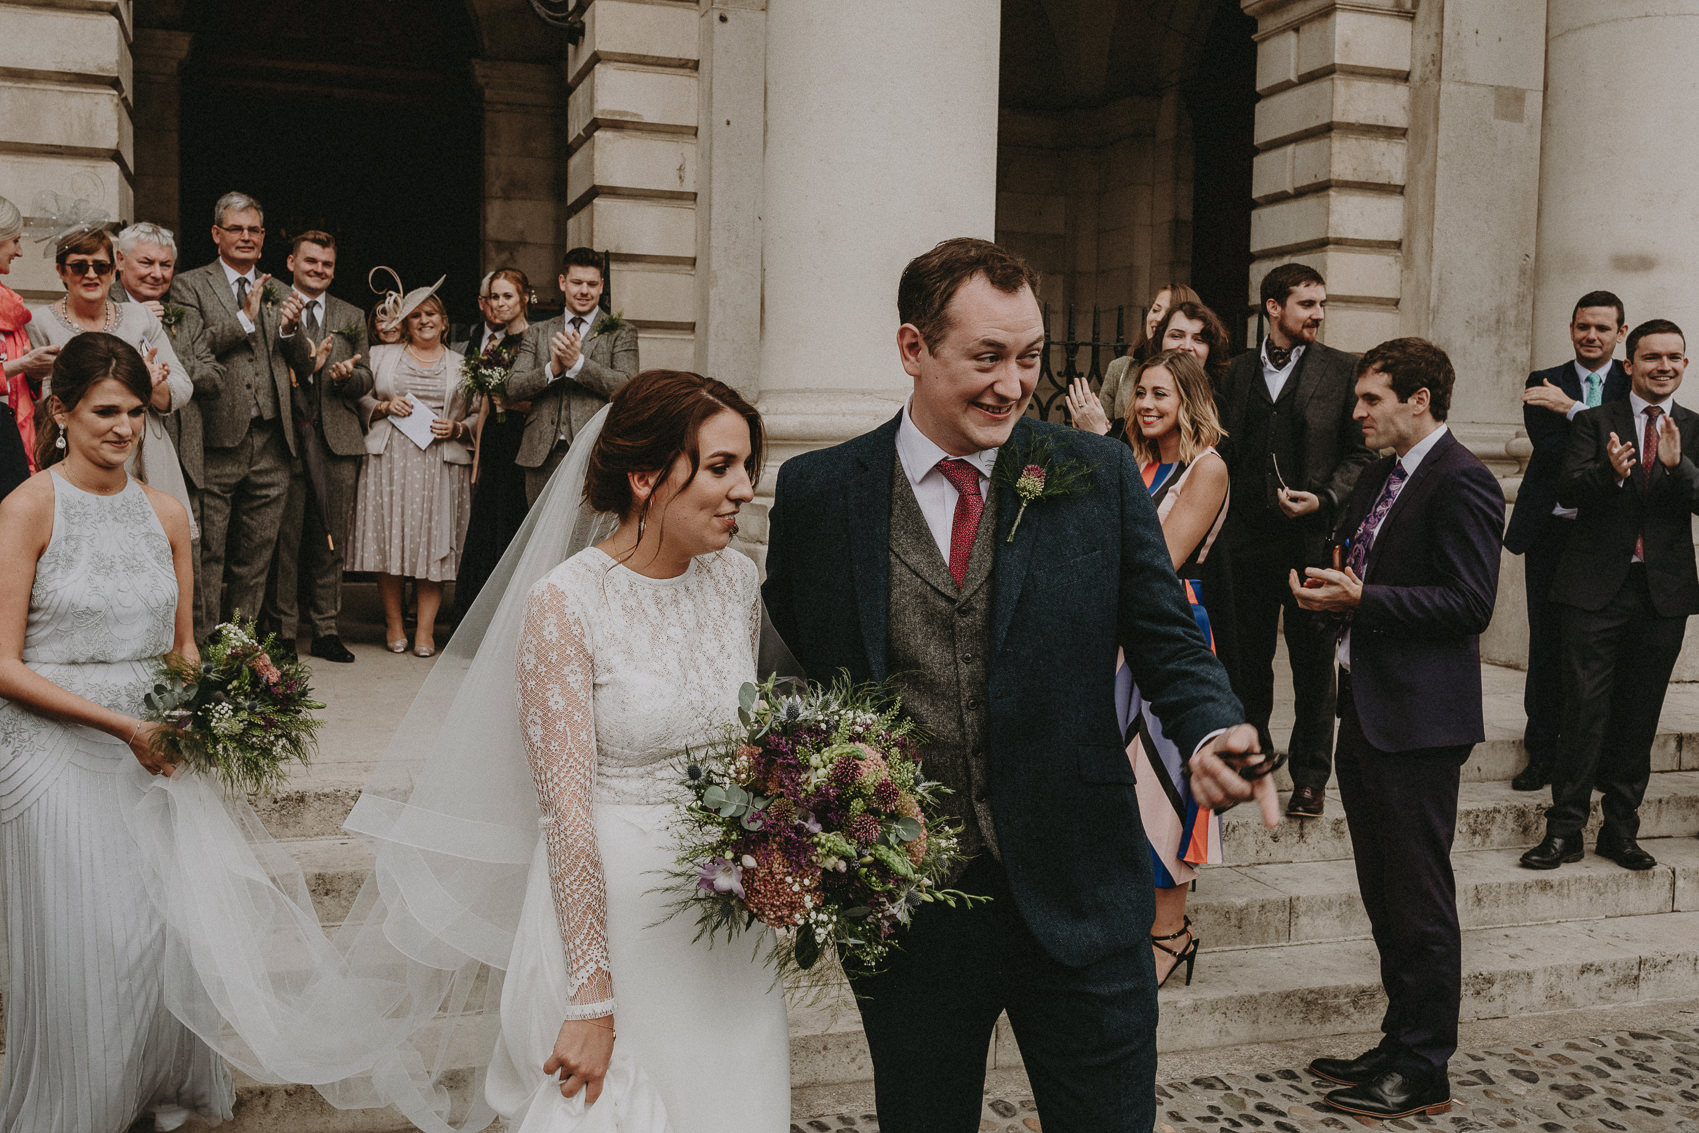 Jessica & Vincent wedding at Martinstown House 59